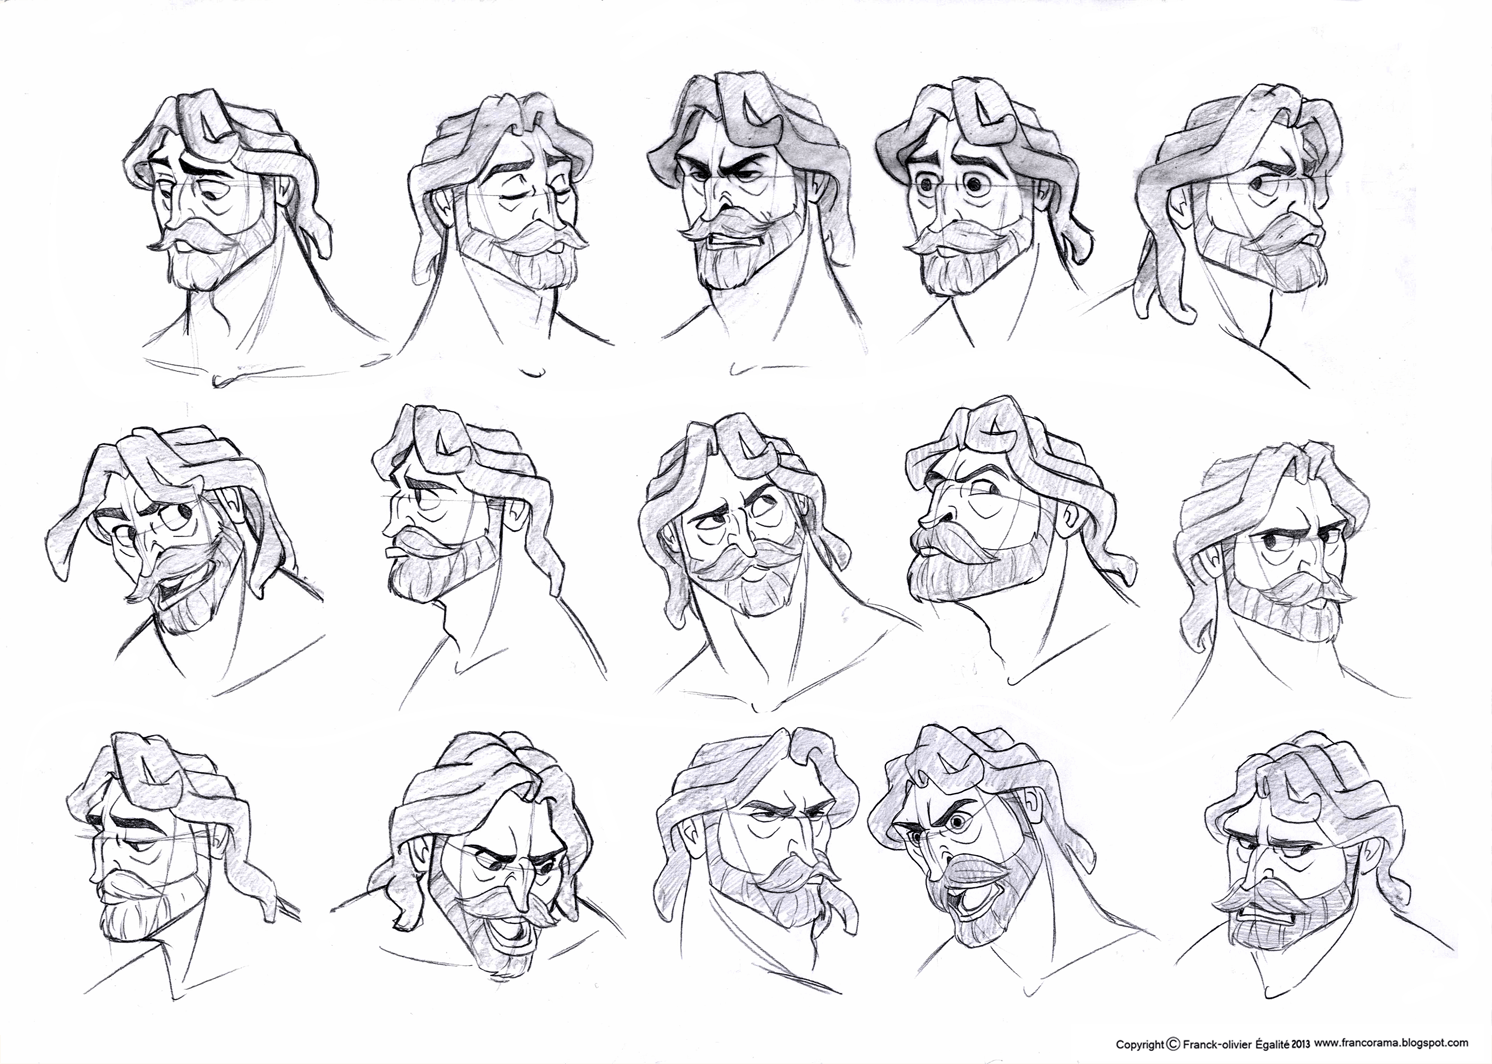 Franco's Blog: Character Design Assignment Tree: Tarzan